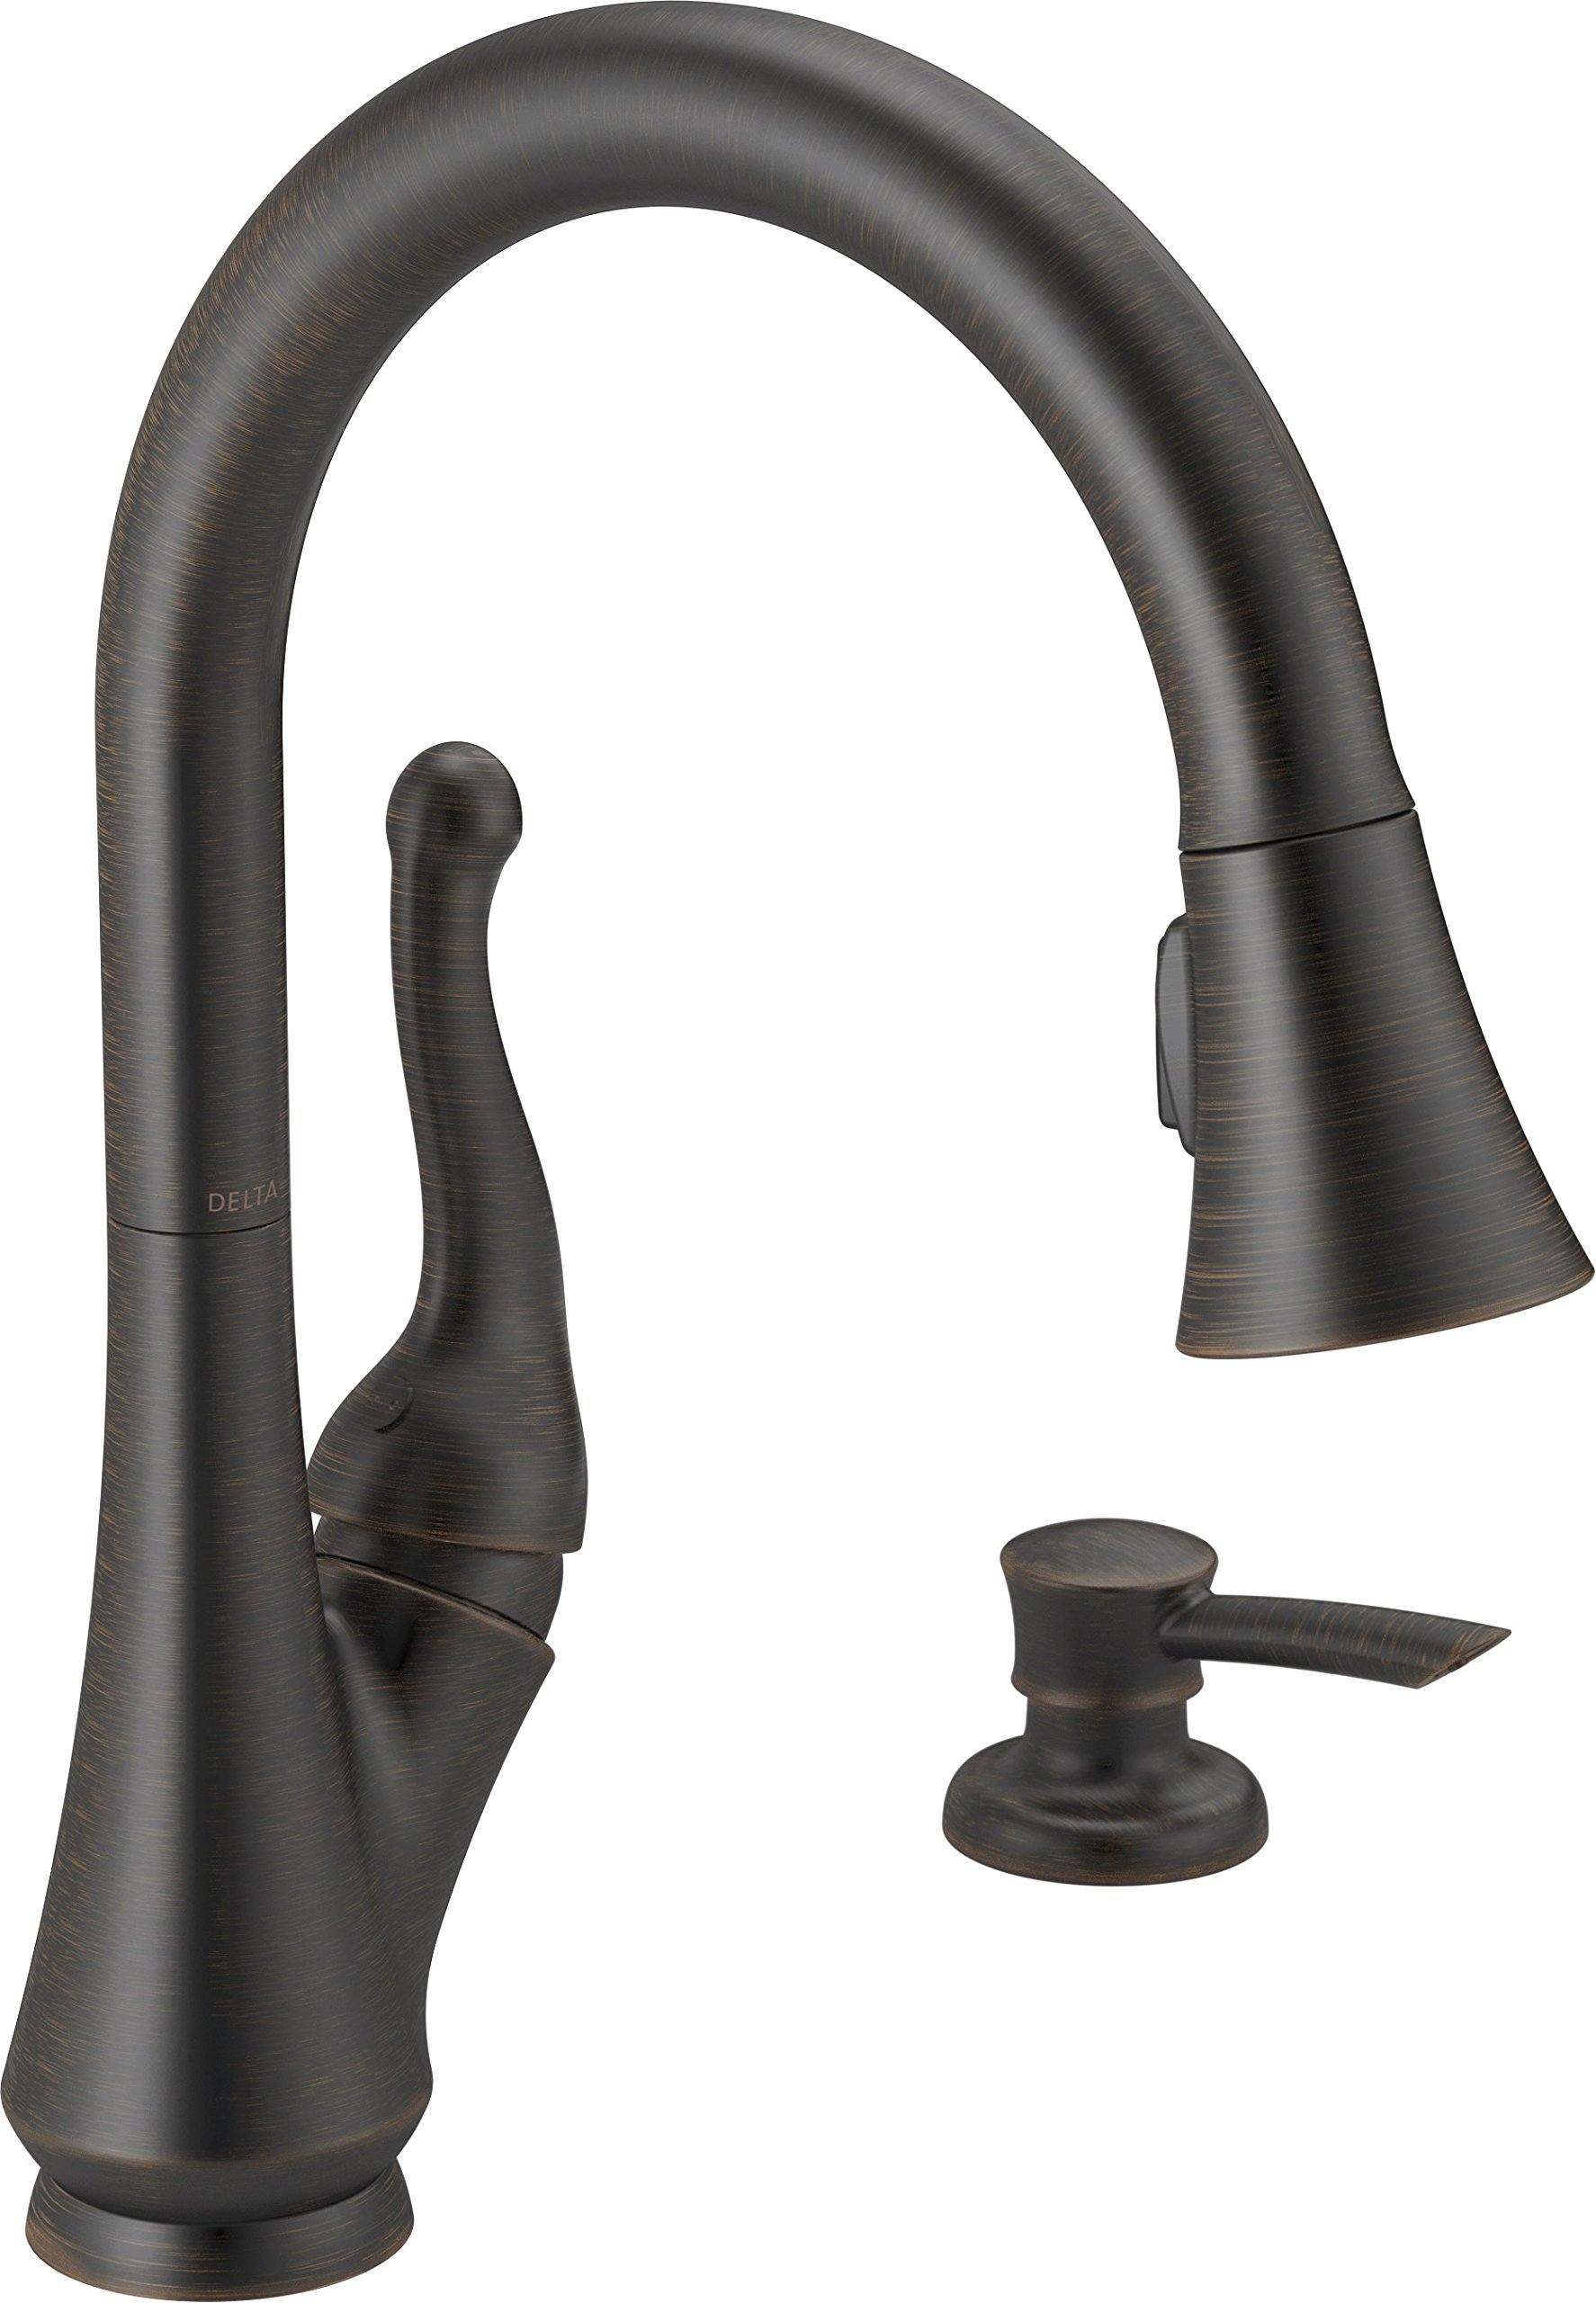 Delta Faucet Talbott Single-Handle Kitchen Sink Faucet with Pull Down Sprayer, Soap Dispenser and Magnetic Docking Spray Head, Venetian Bronze 16968-RBSD-DST